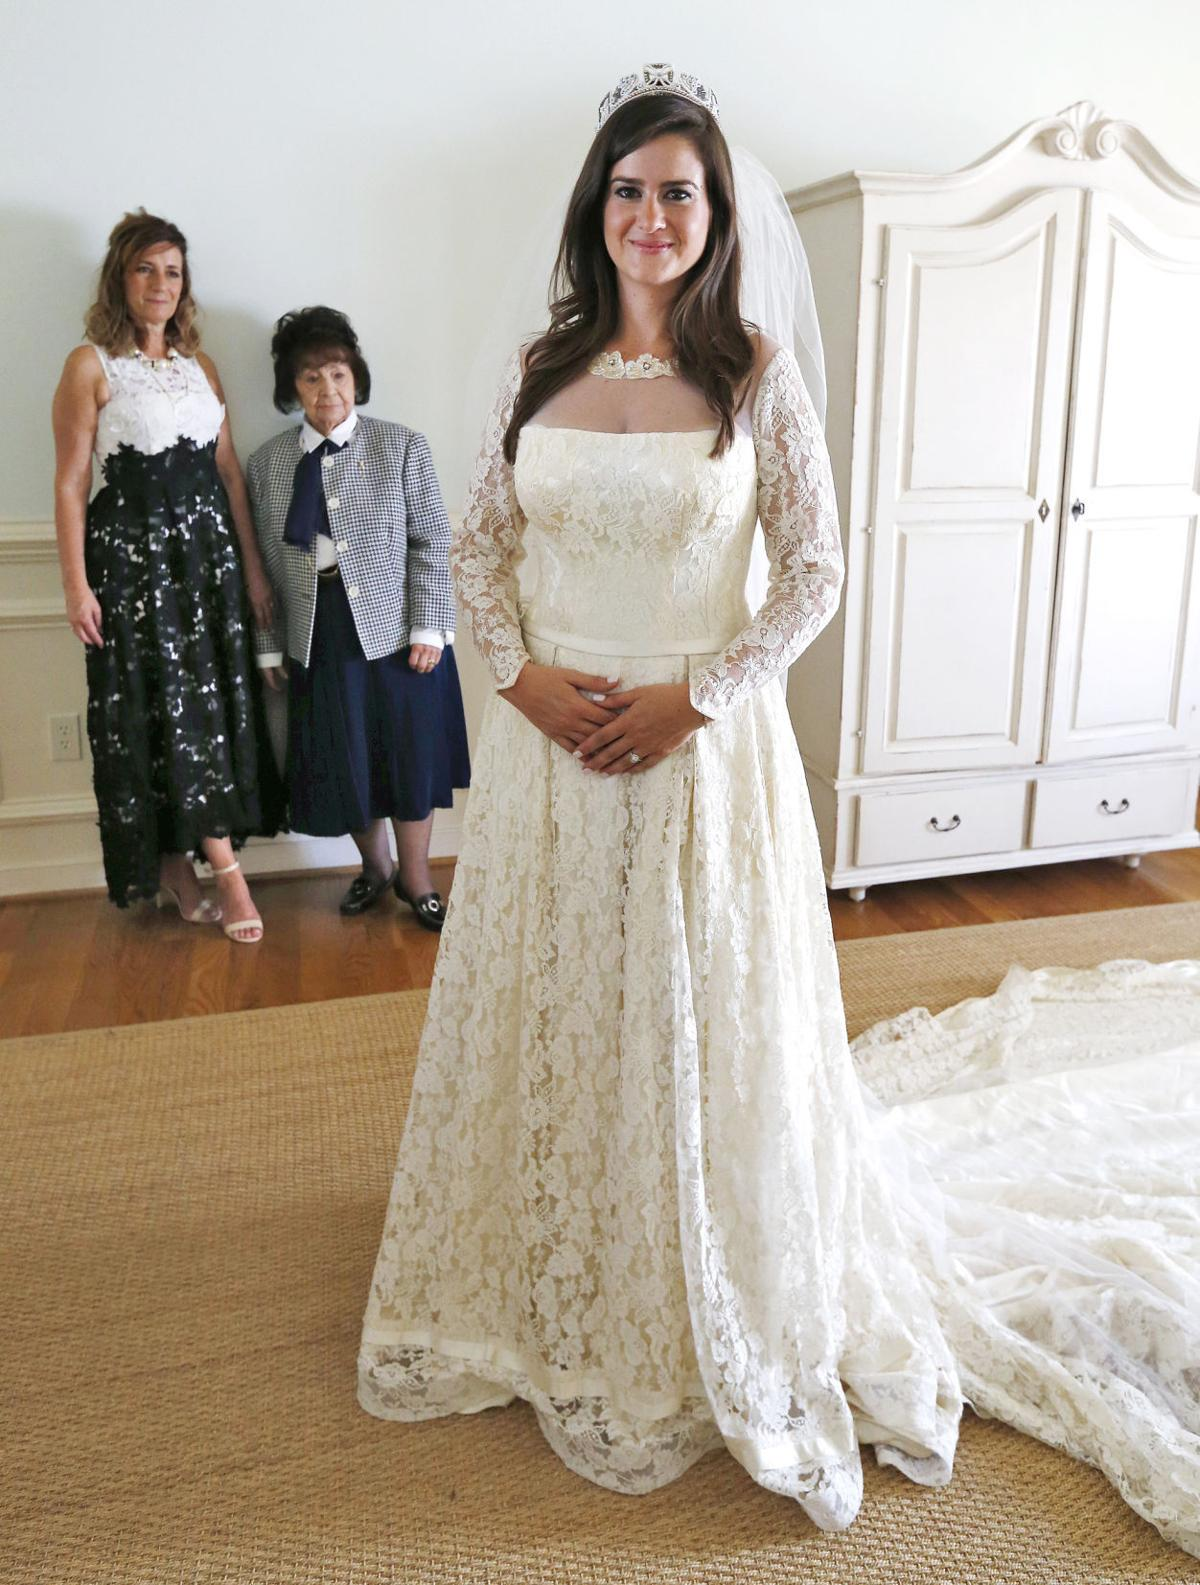 North chesterfield woman gets married in third generation for 3rd time wedding dresses